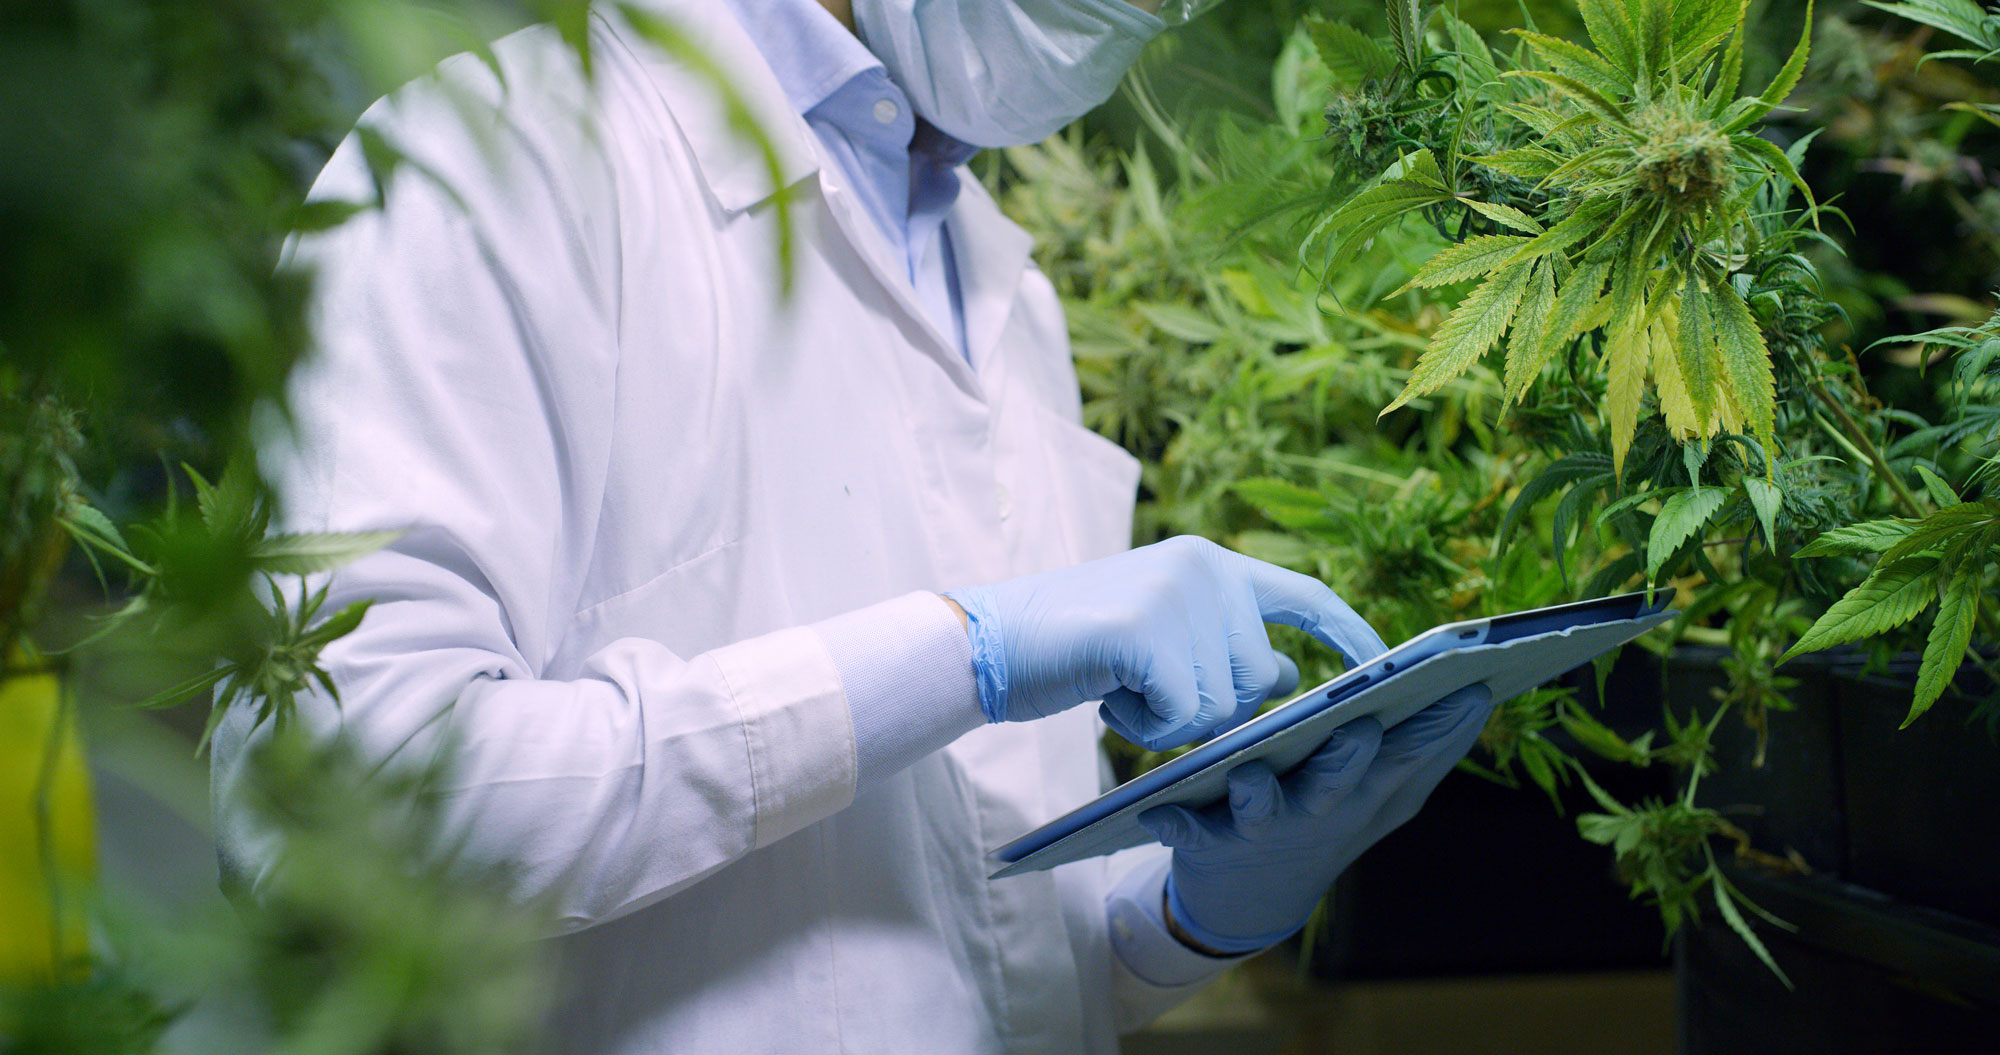 researcher studying marijuana plants